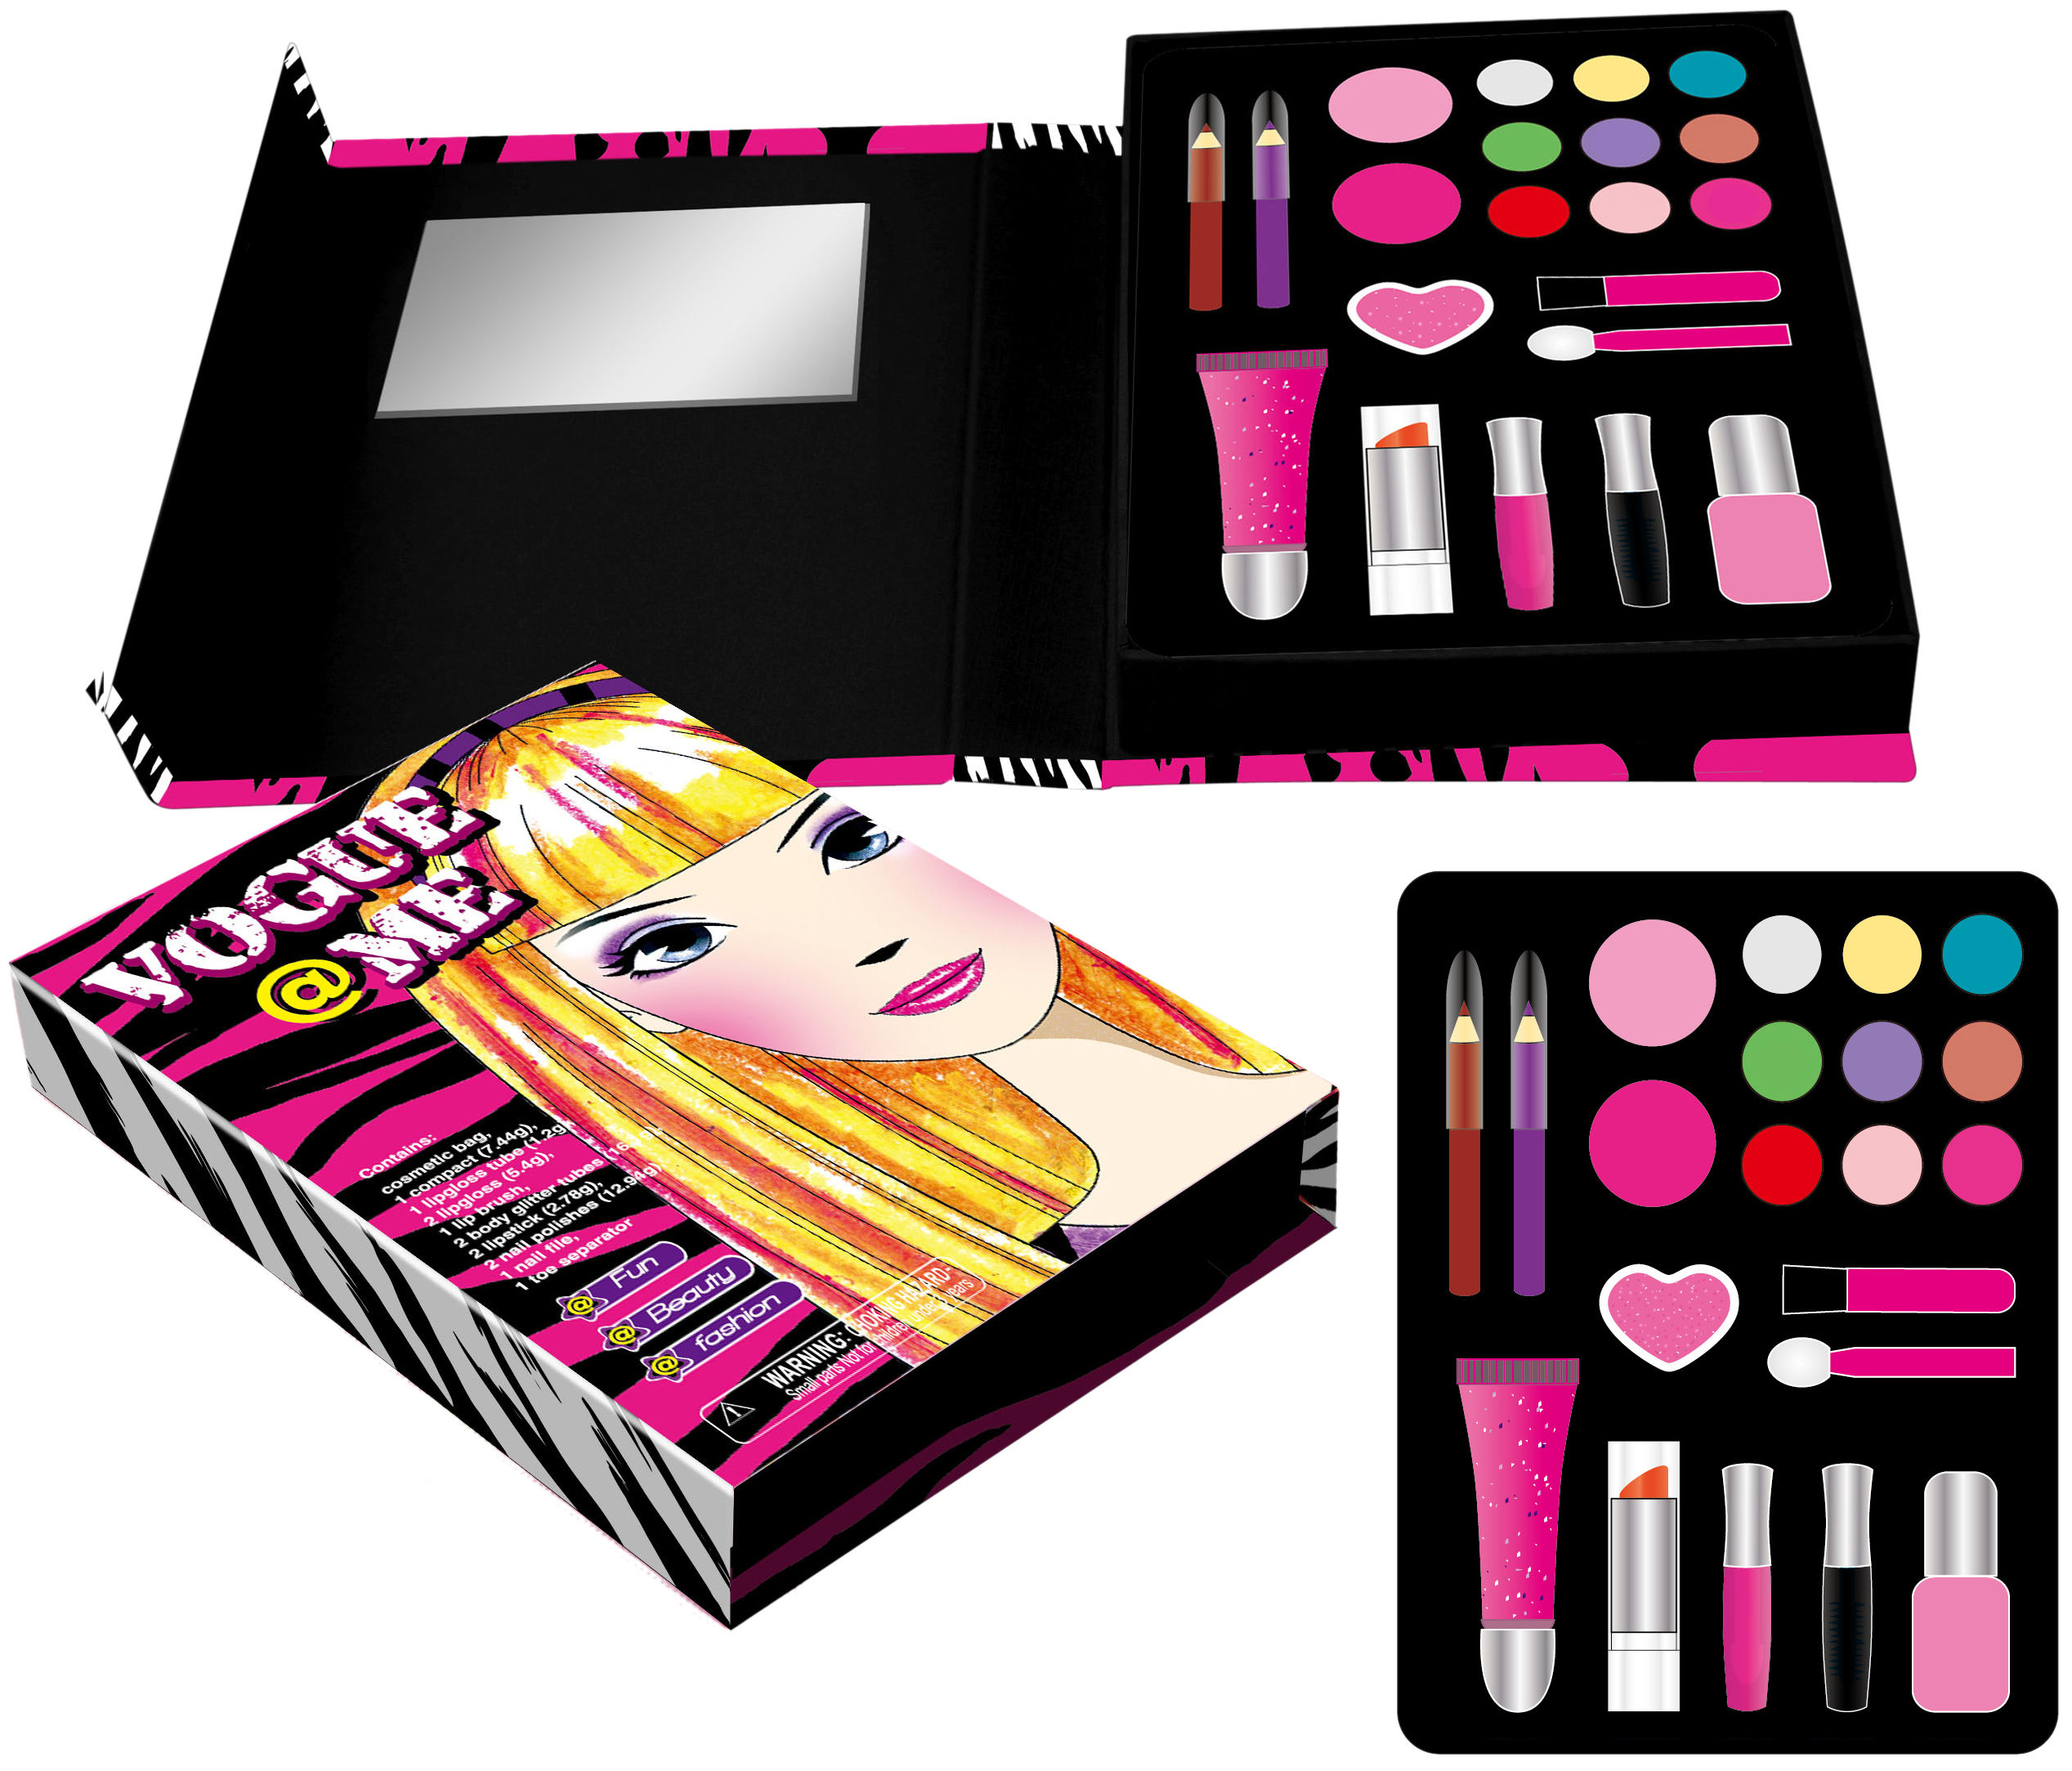 Parties face paint child friendly cosmetics cheap kids makeup palette gift sets for girls